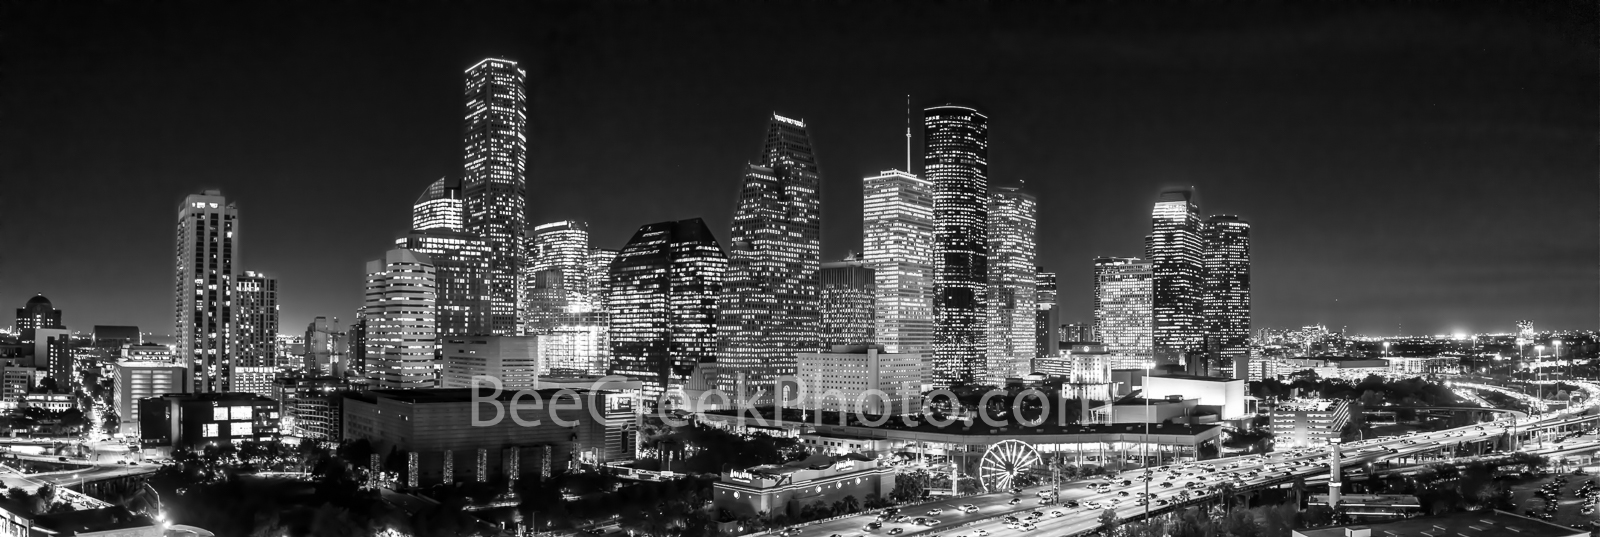 Aerial Houston Skyline B W Pano - Capture this black and white aerial panorama of Houston Skyline during the day in downtown....